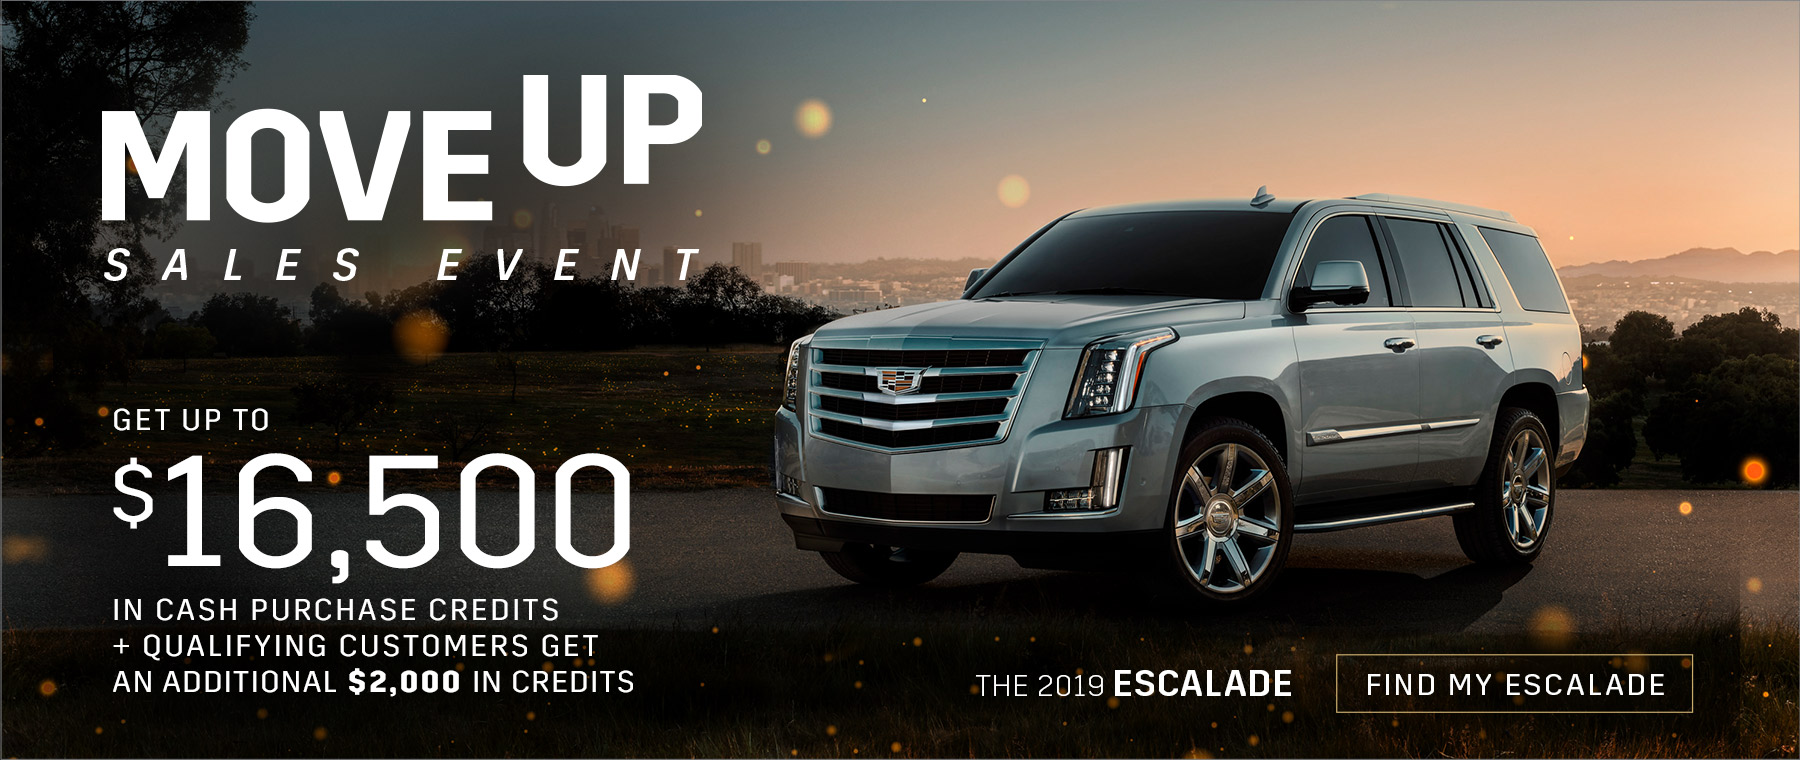 Move Up Sales Event - 2019 Escalade